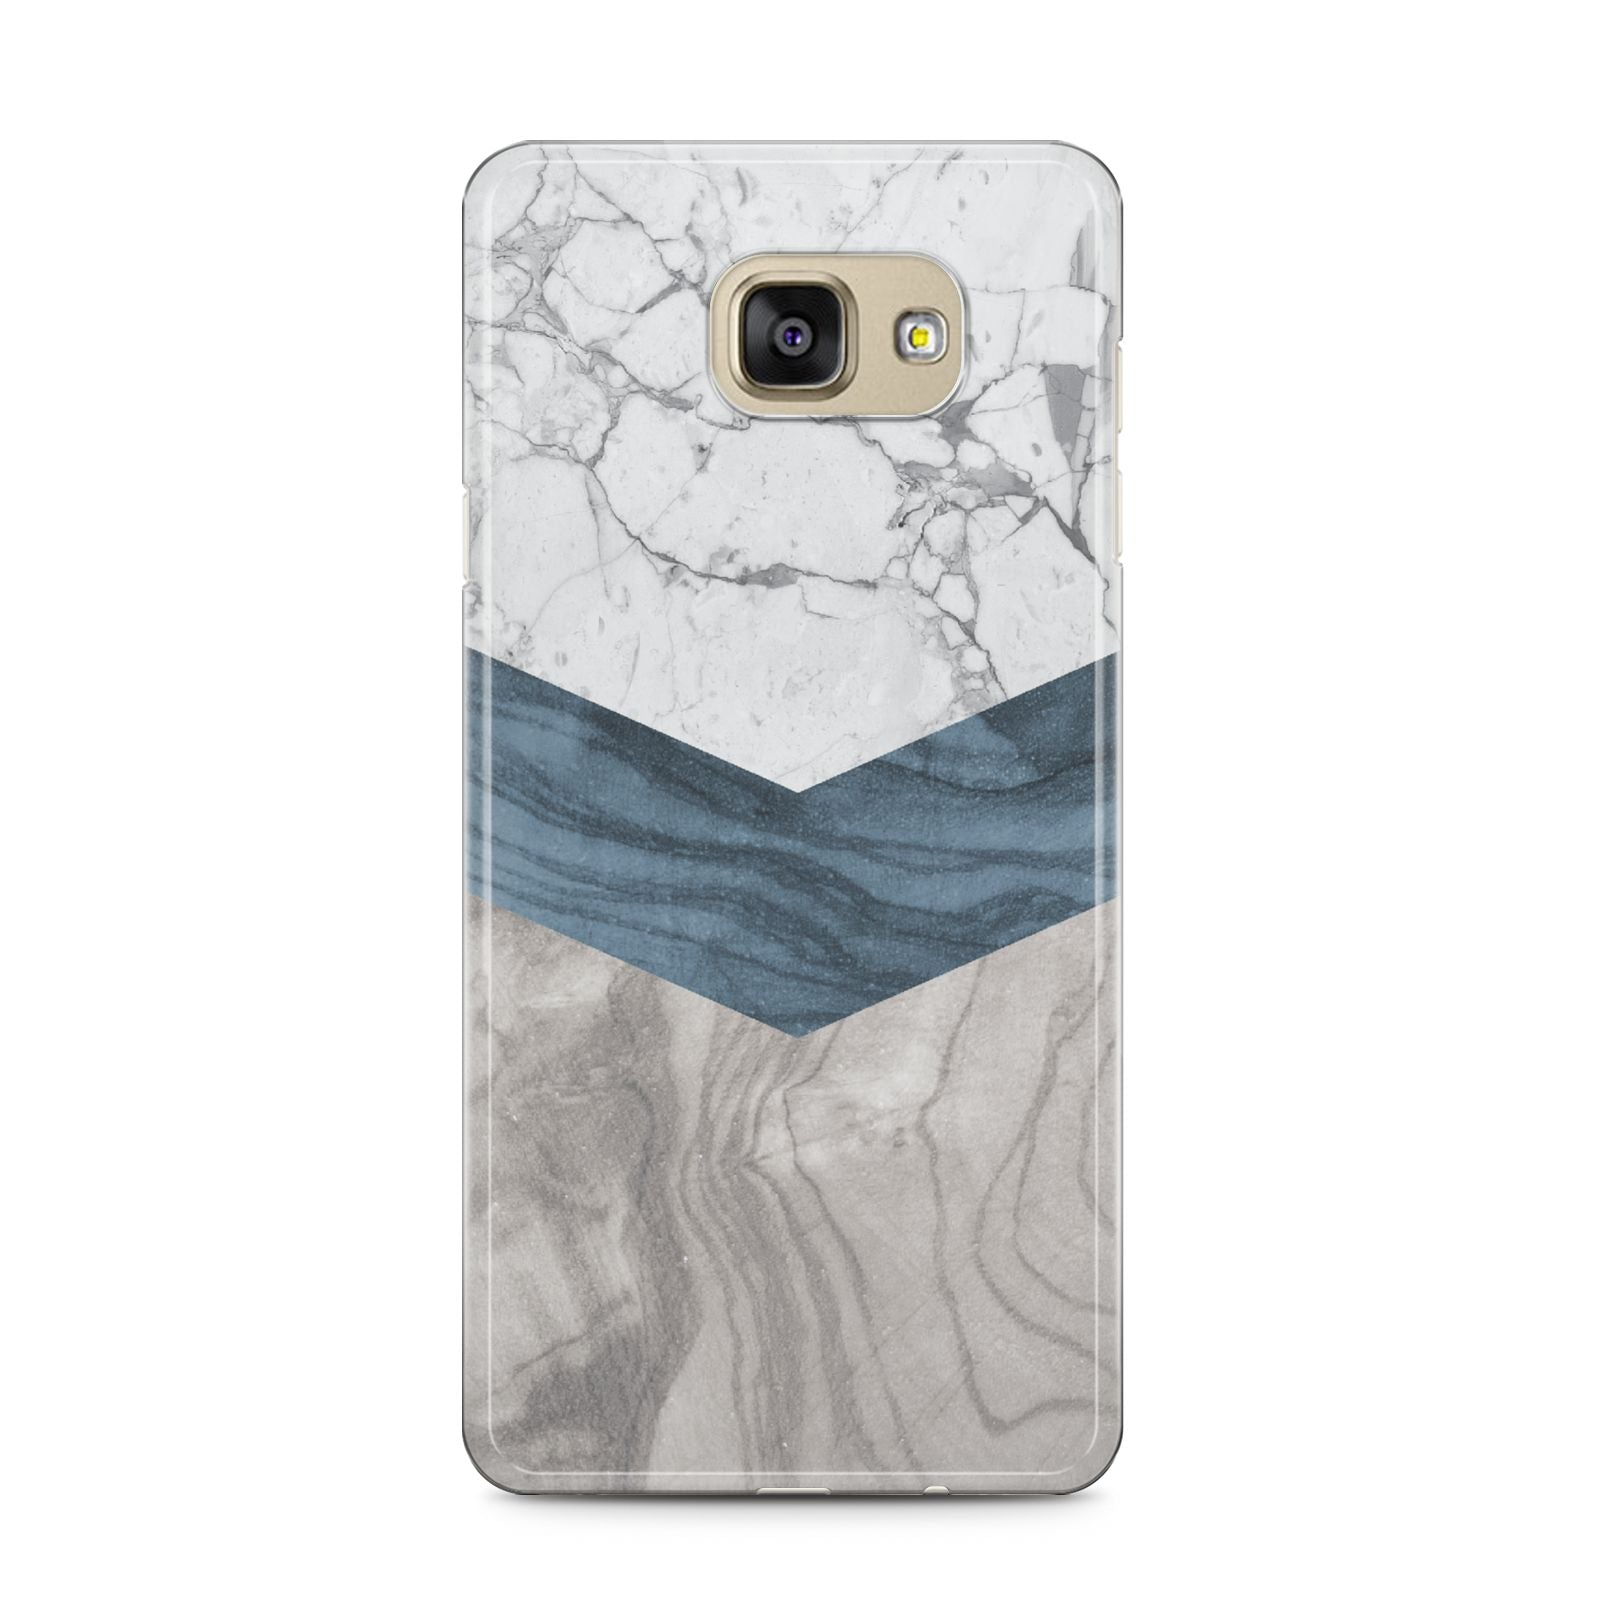 Marble Wood Geometric 8 Samsung Galaxy A5 2016 Case on gold phone